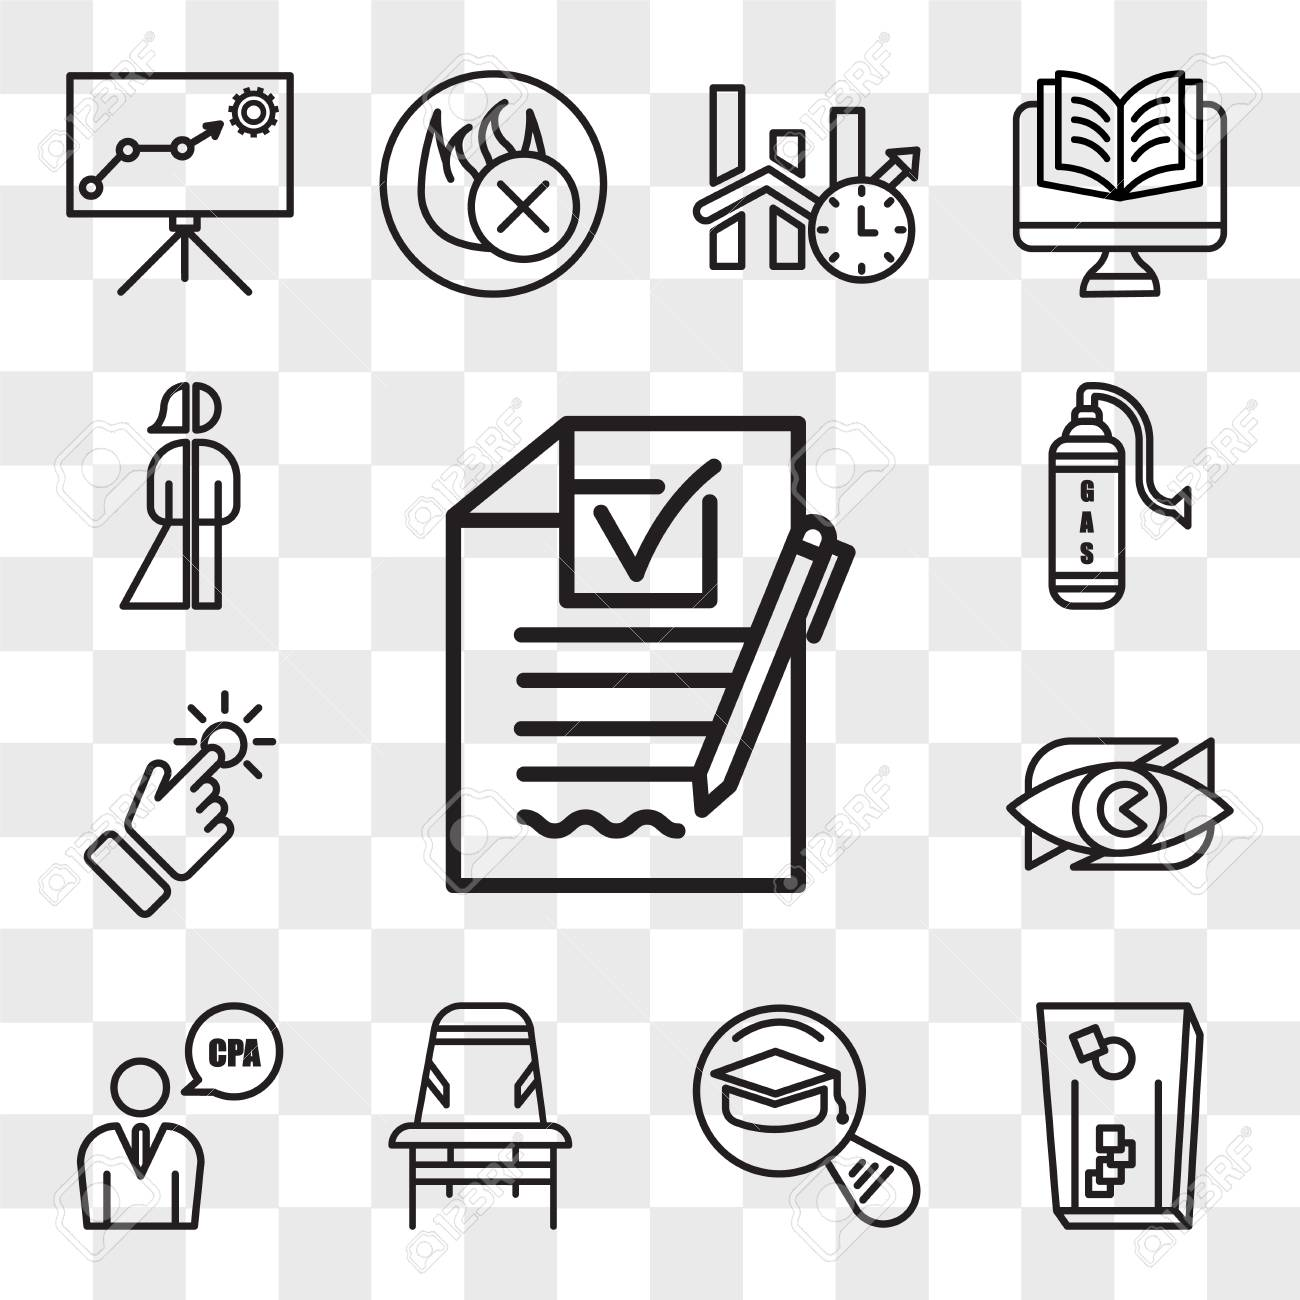 Set Of 13 transparent editable icons such as rfp, cornhole, most